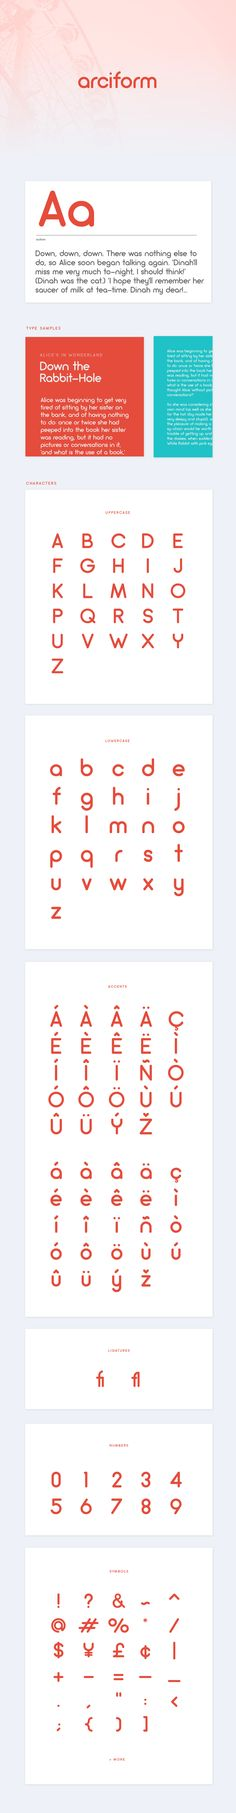 A geometric sans serif  typeface with rounds and a light and fluffy feel.